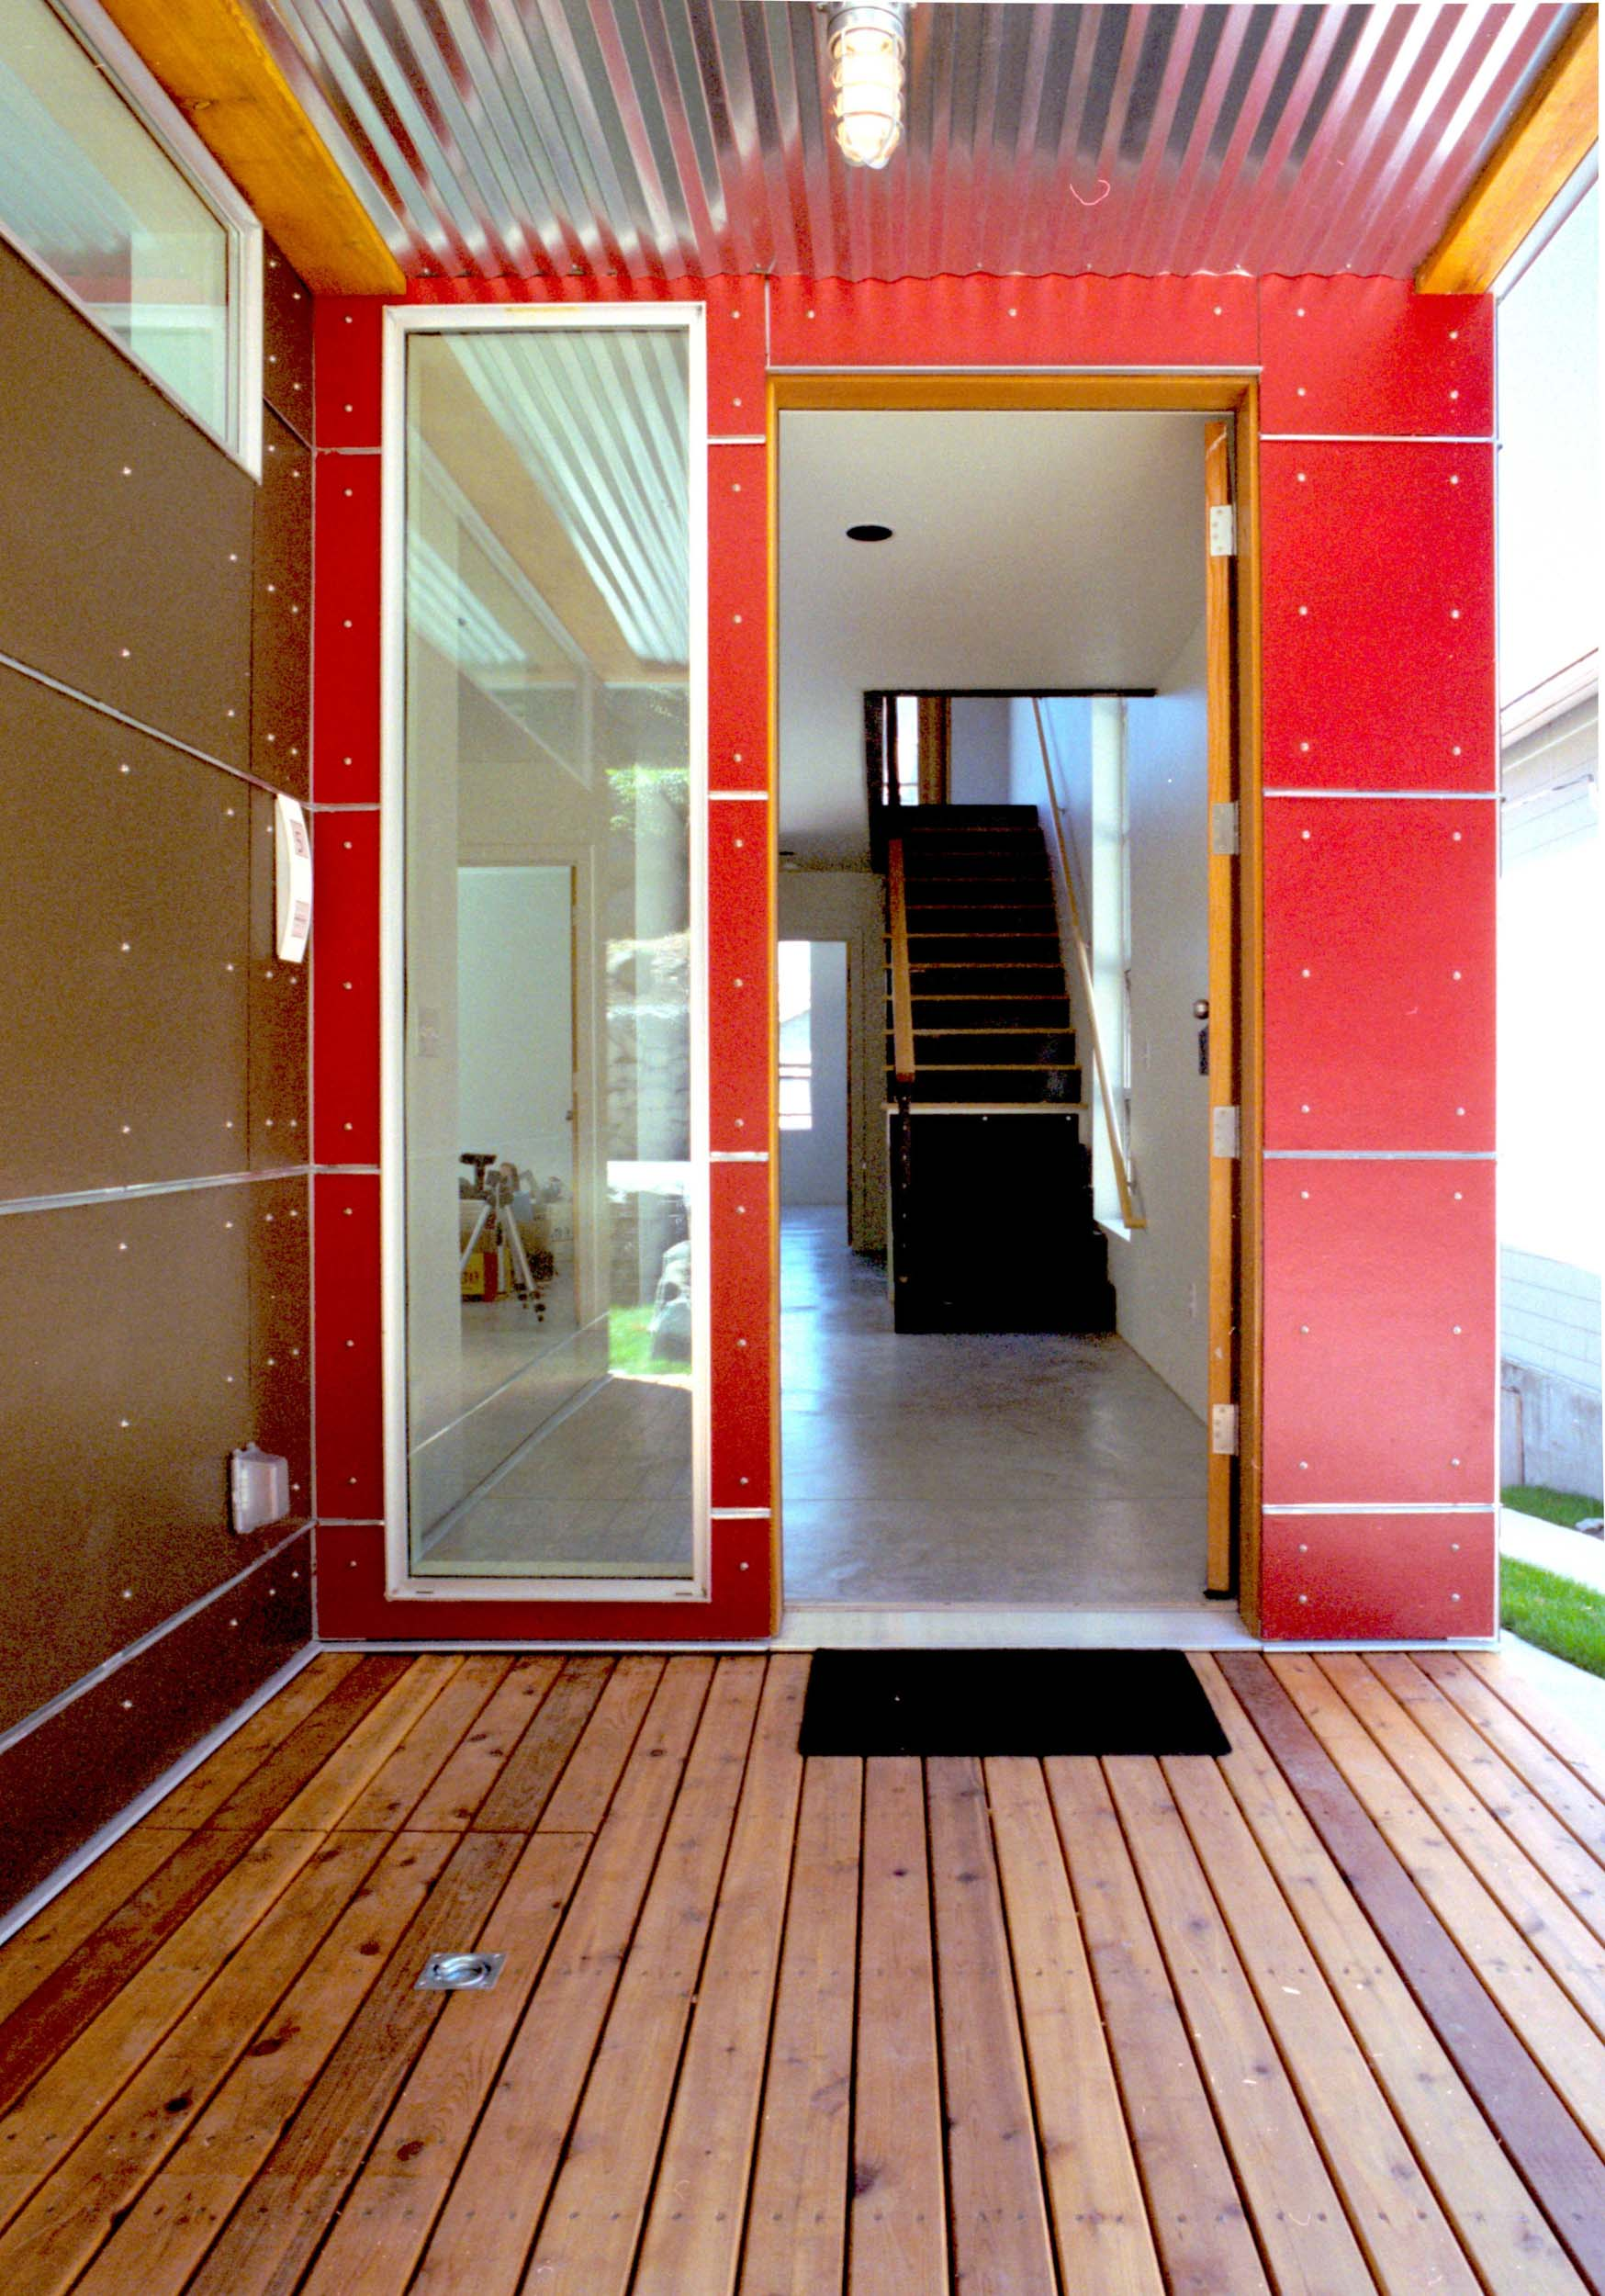 WC-STUDIO-CENTRAL-DISTRICT-HOUSE-COLORFUL-RED-ENTRY